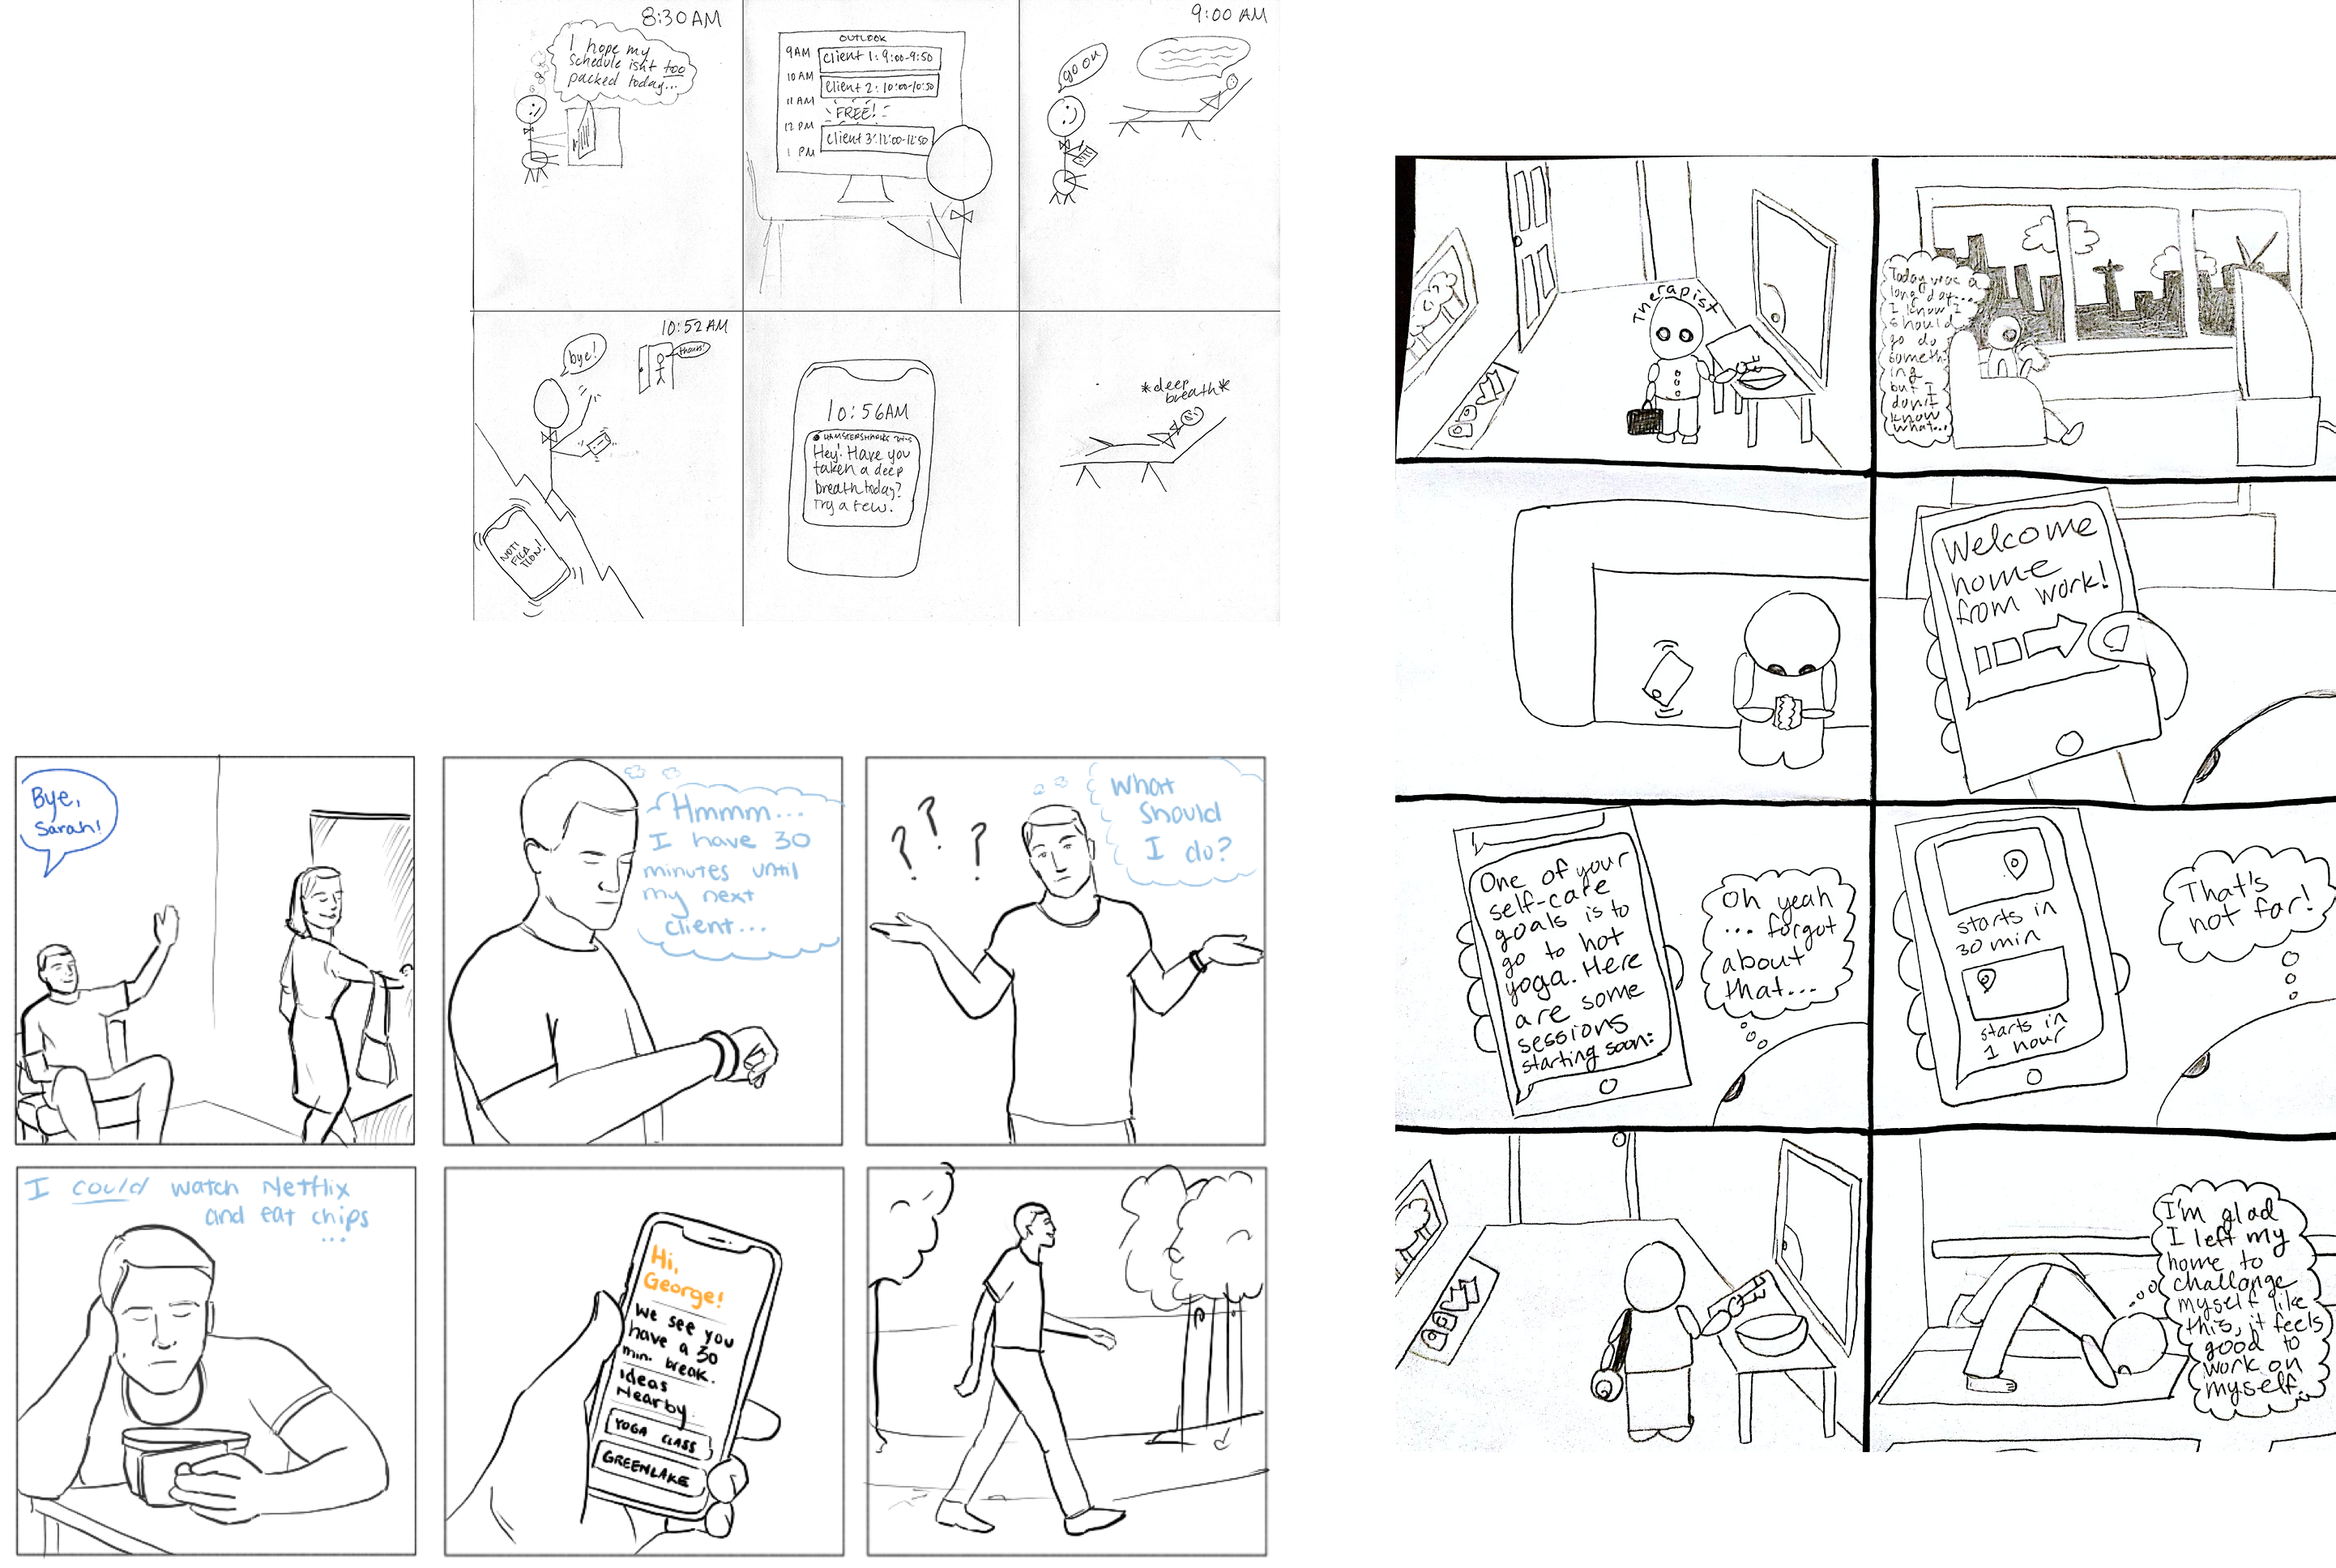 Storyboard screenshots; I apologize but I do not have accessible versions of these documents yet!